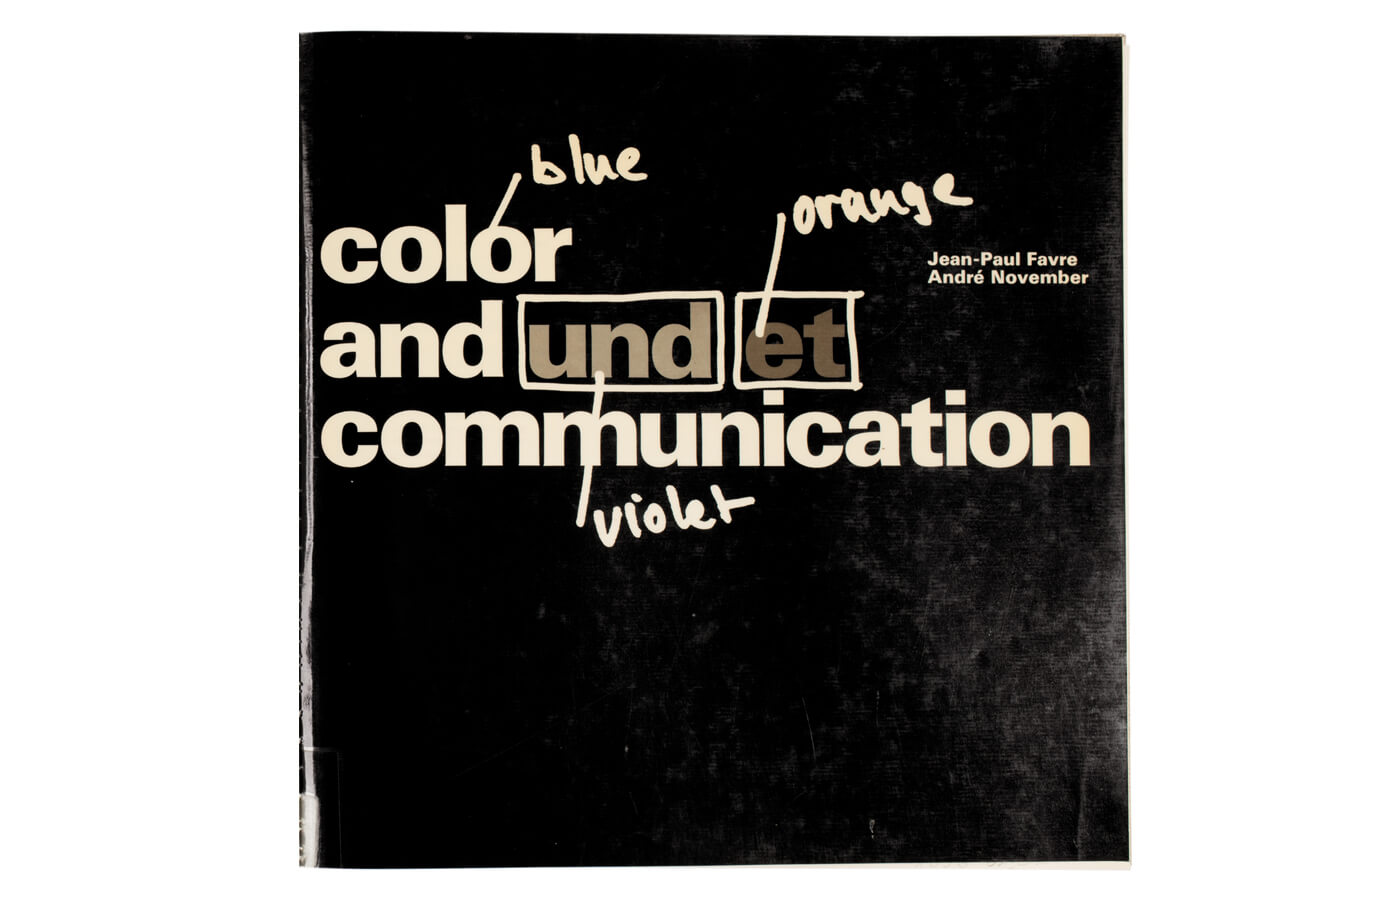 color and und et communication